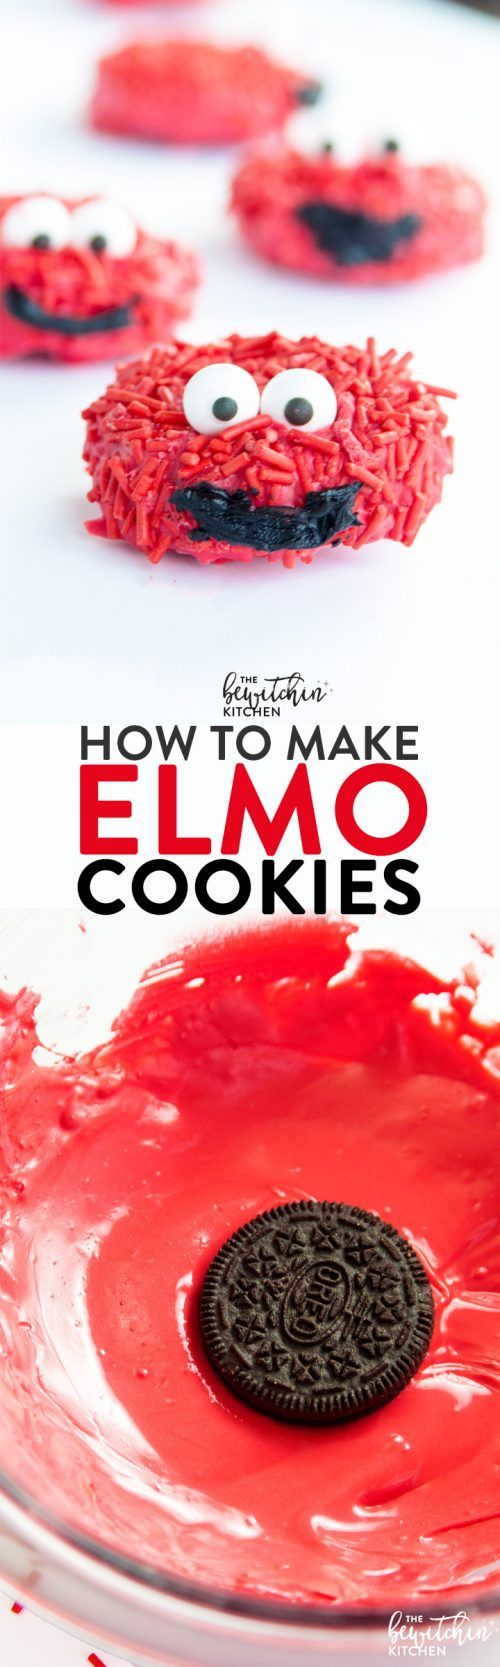 How to make Elmo cookies - these no bake cookies would be great for kids parties, especially a Sesame Street themed birthday or pre school class party! (How To Make Friends As A Child)